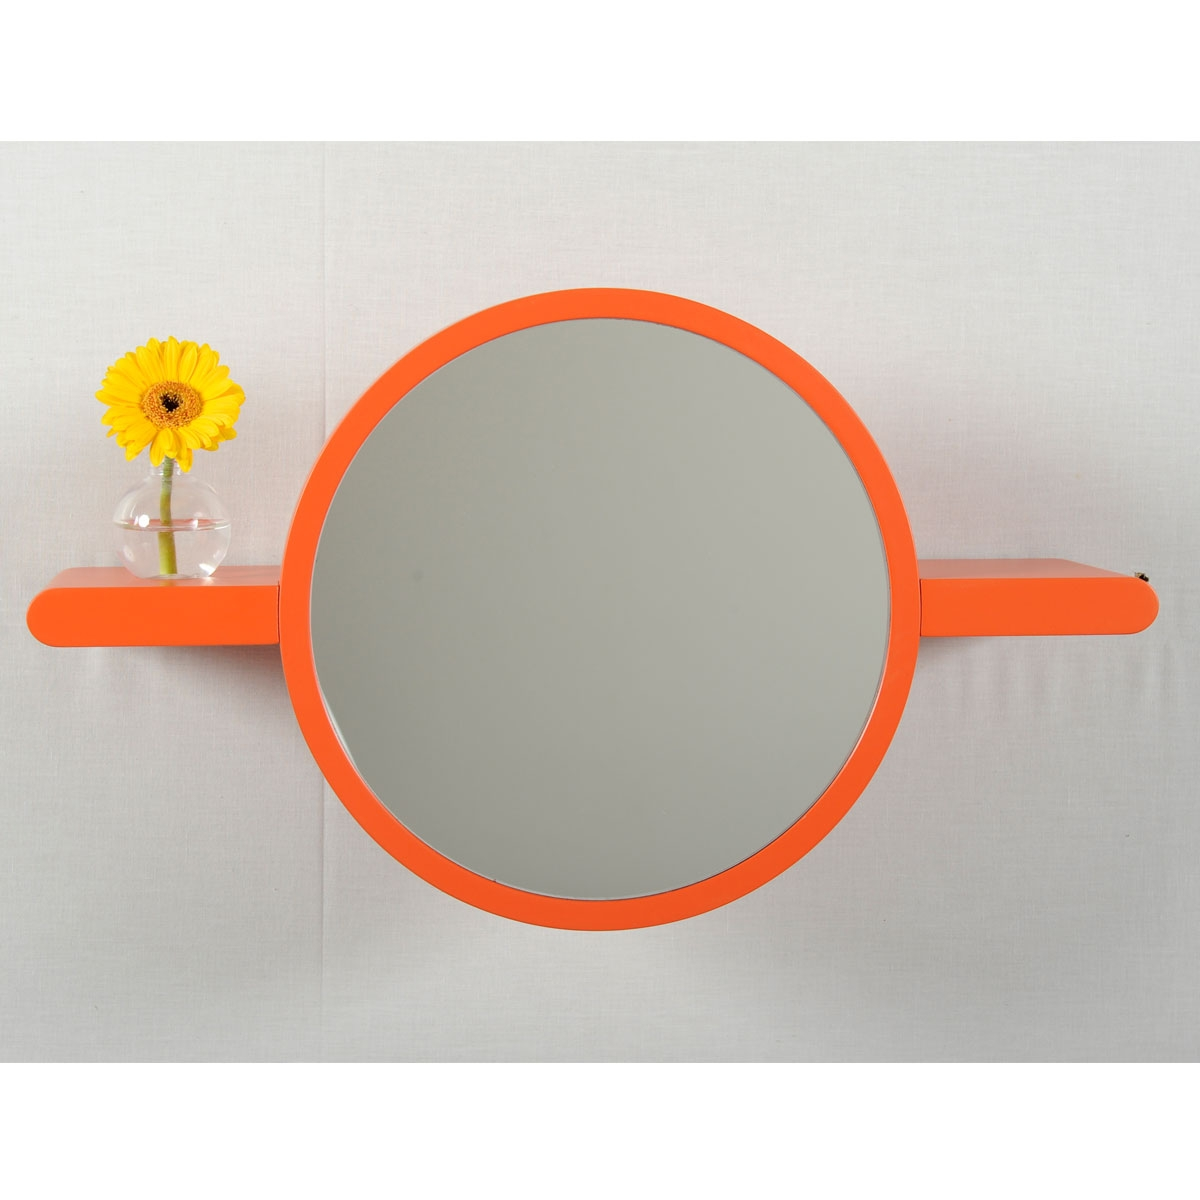 Miroir tablette design mirette rond par oxyo for Miroir design rond